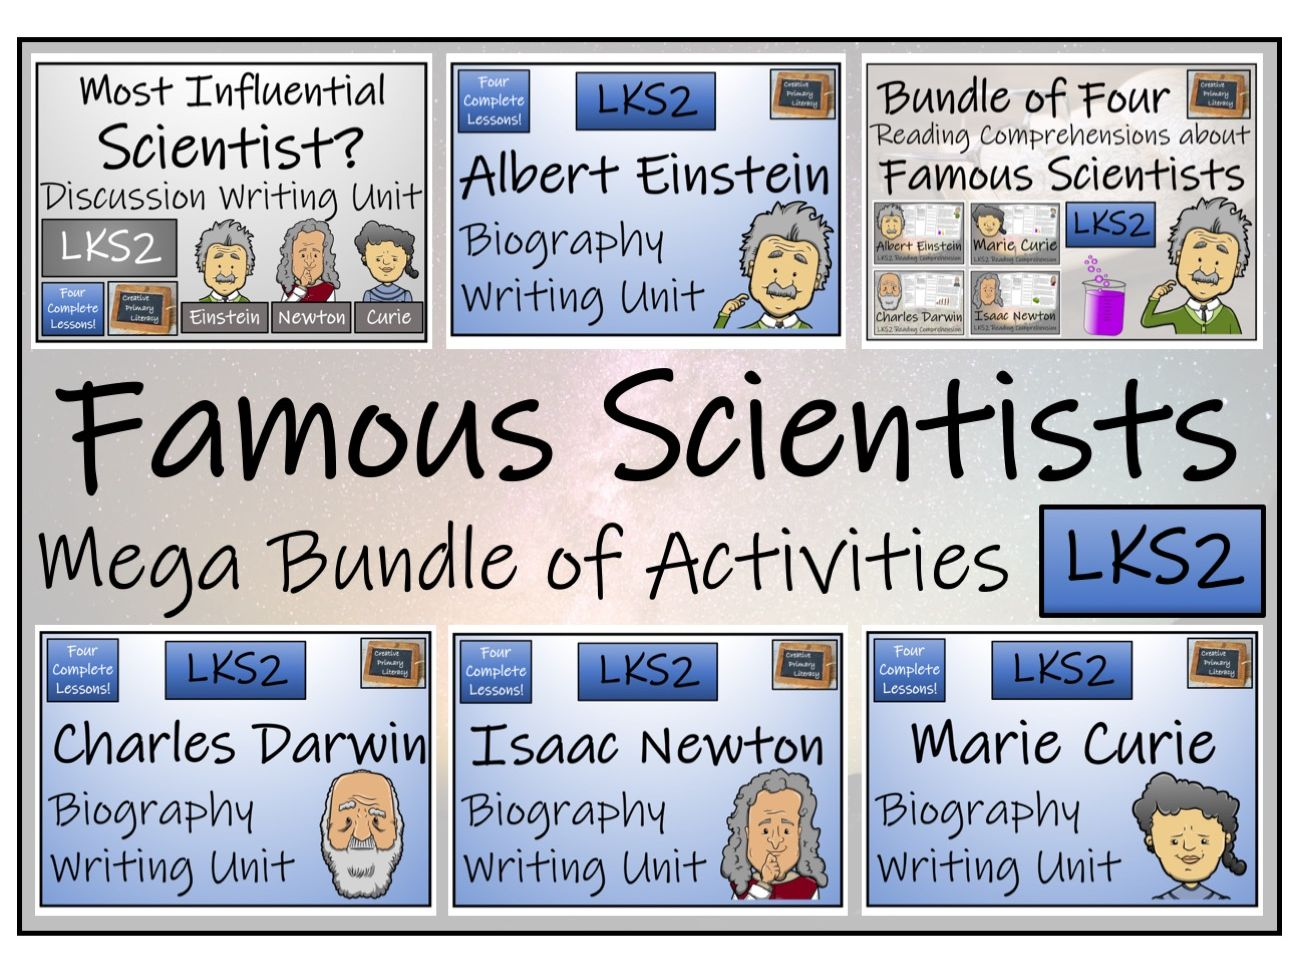 LKS2 Science - Famous Scientists Mega Bundle of Activities